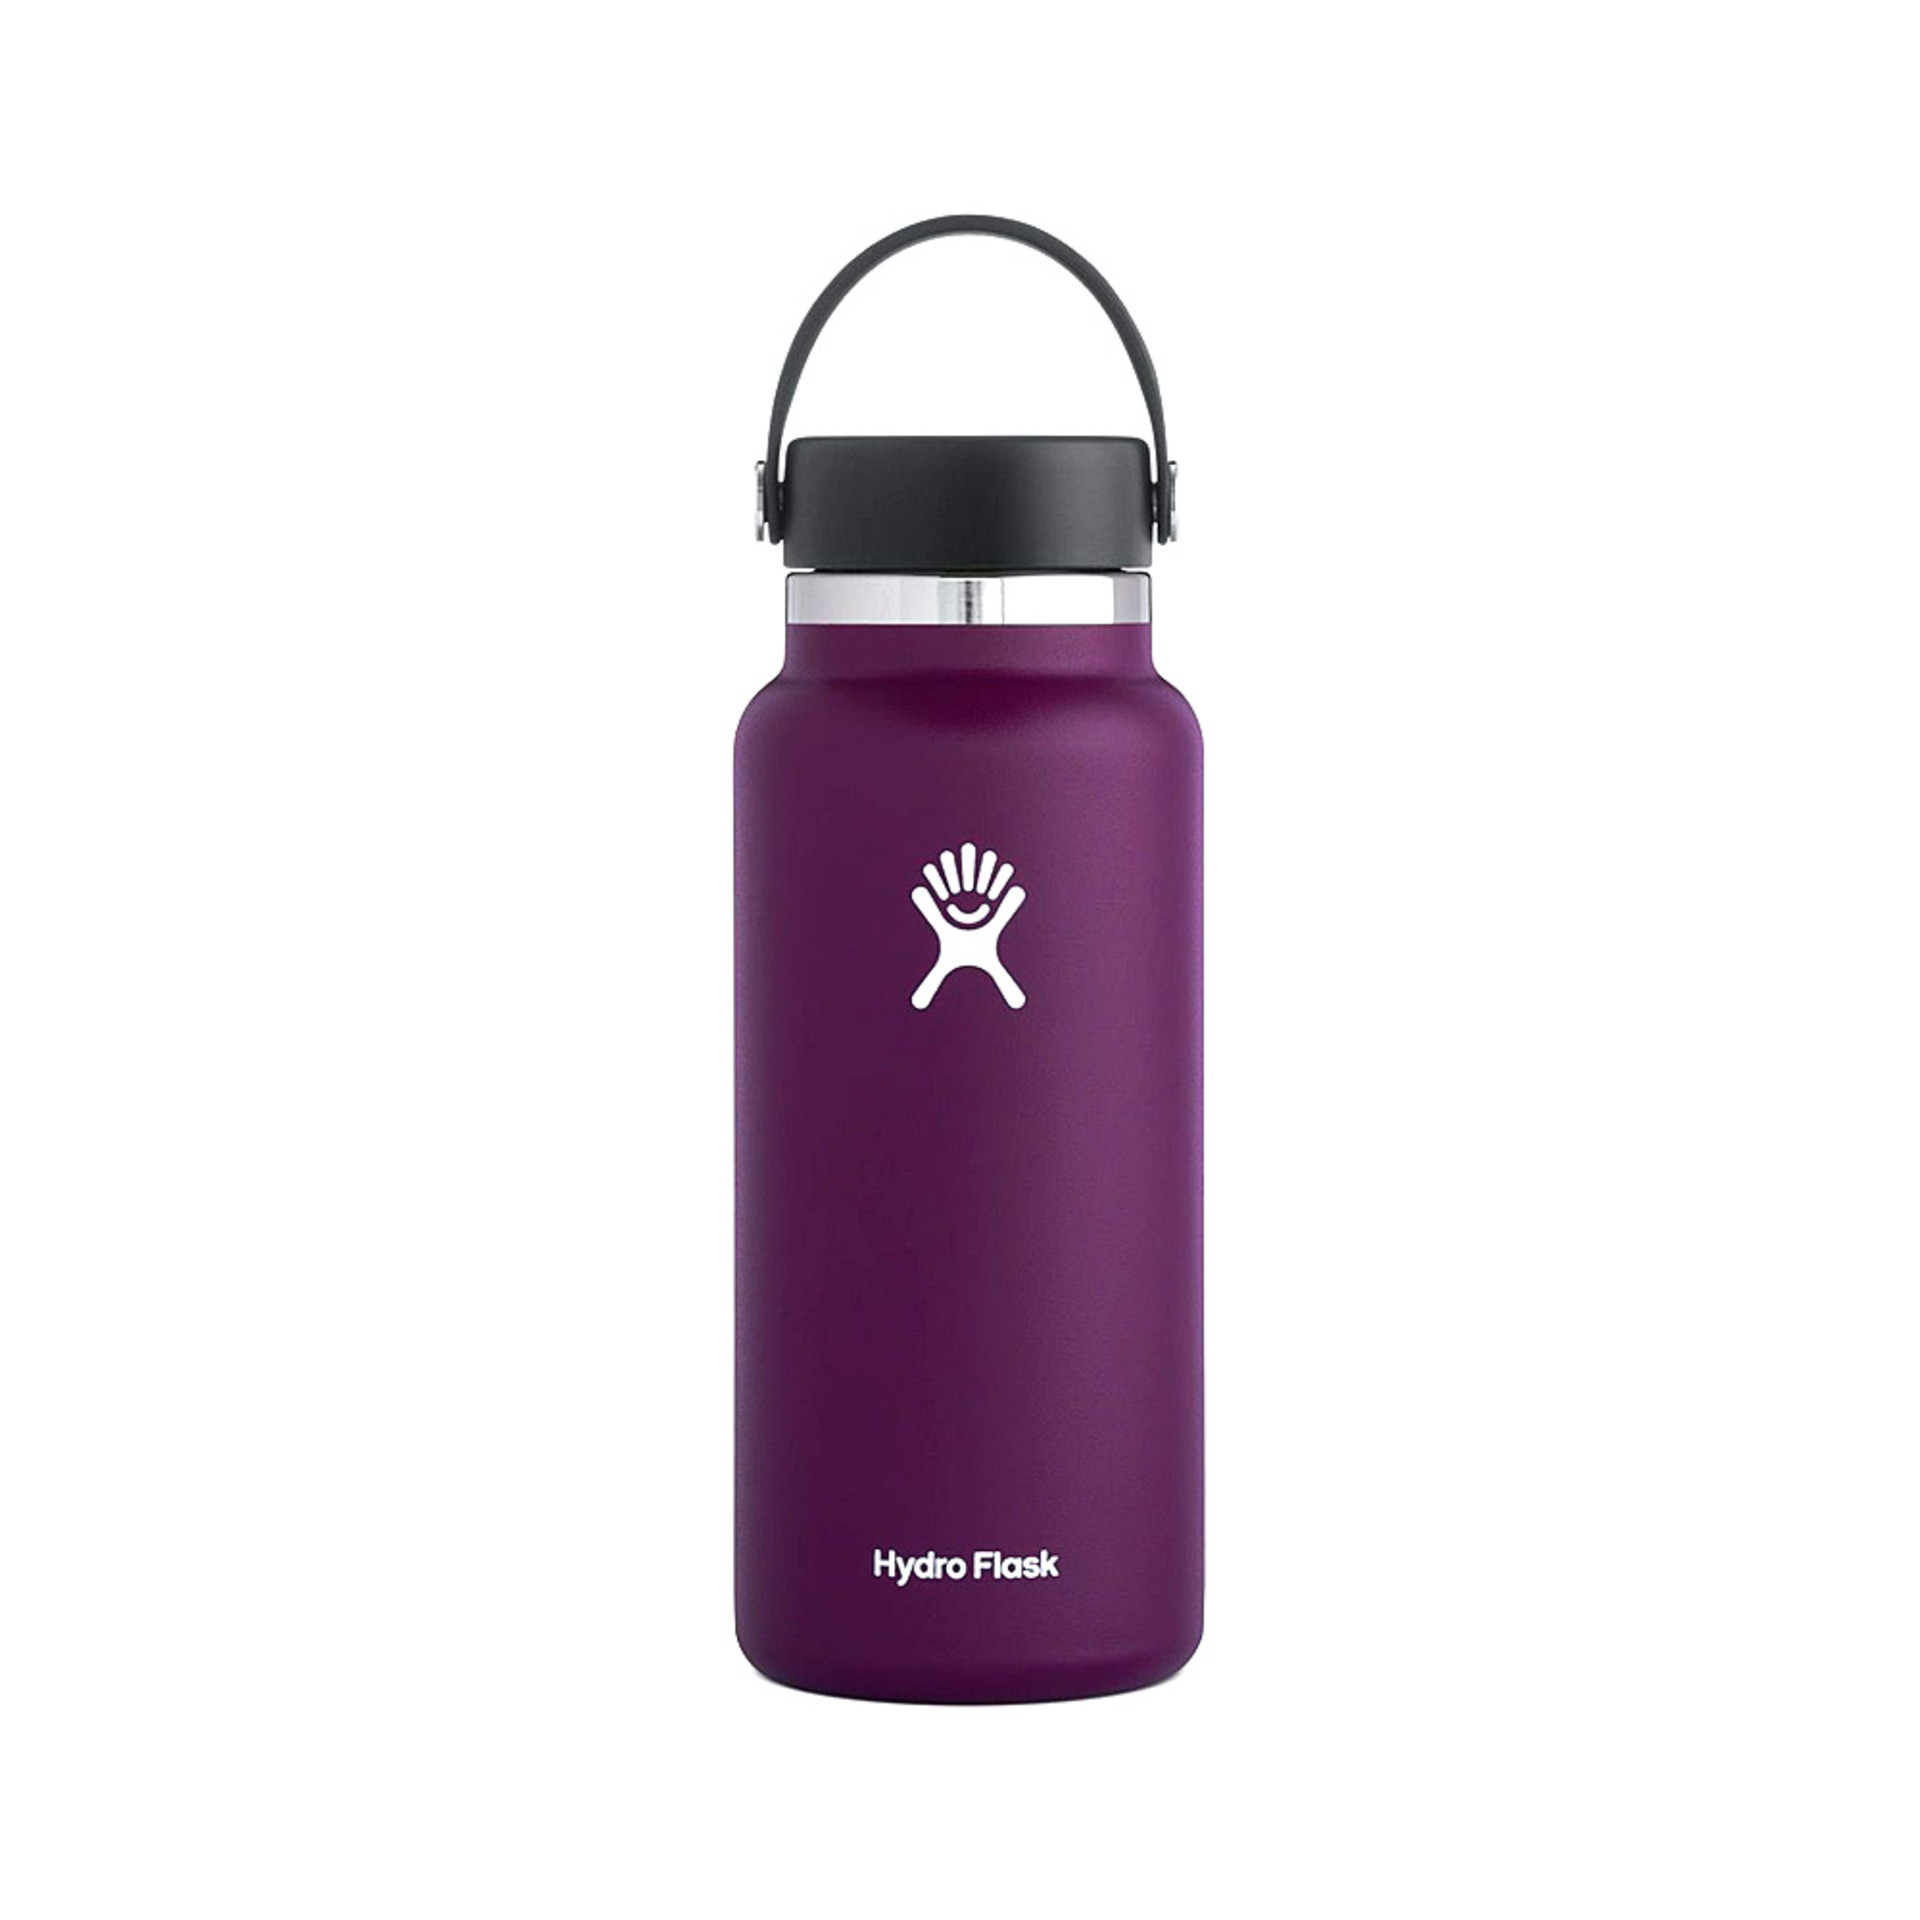 Hydro Flask Wide Mouth Water Bottle 32oz – Eggplant